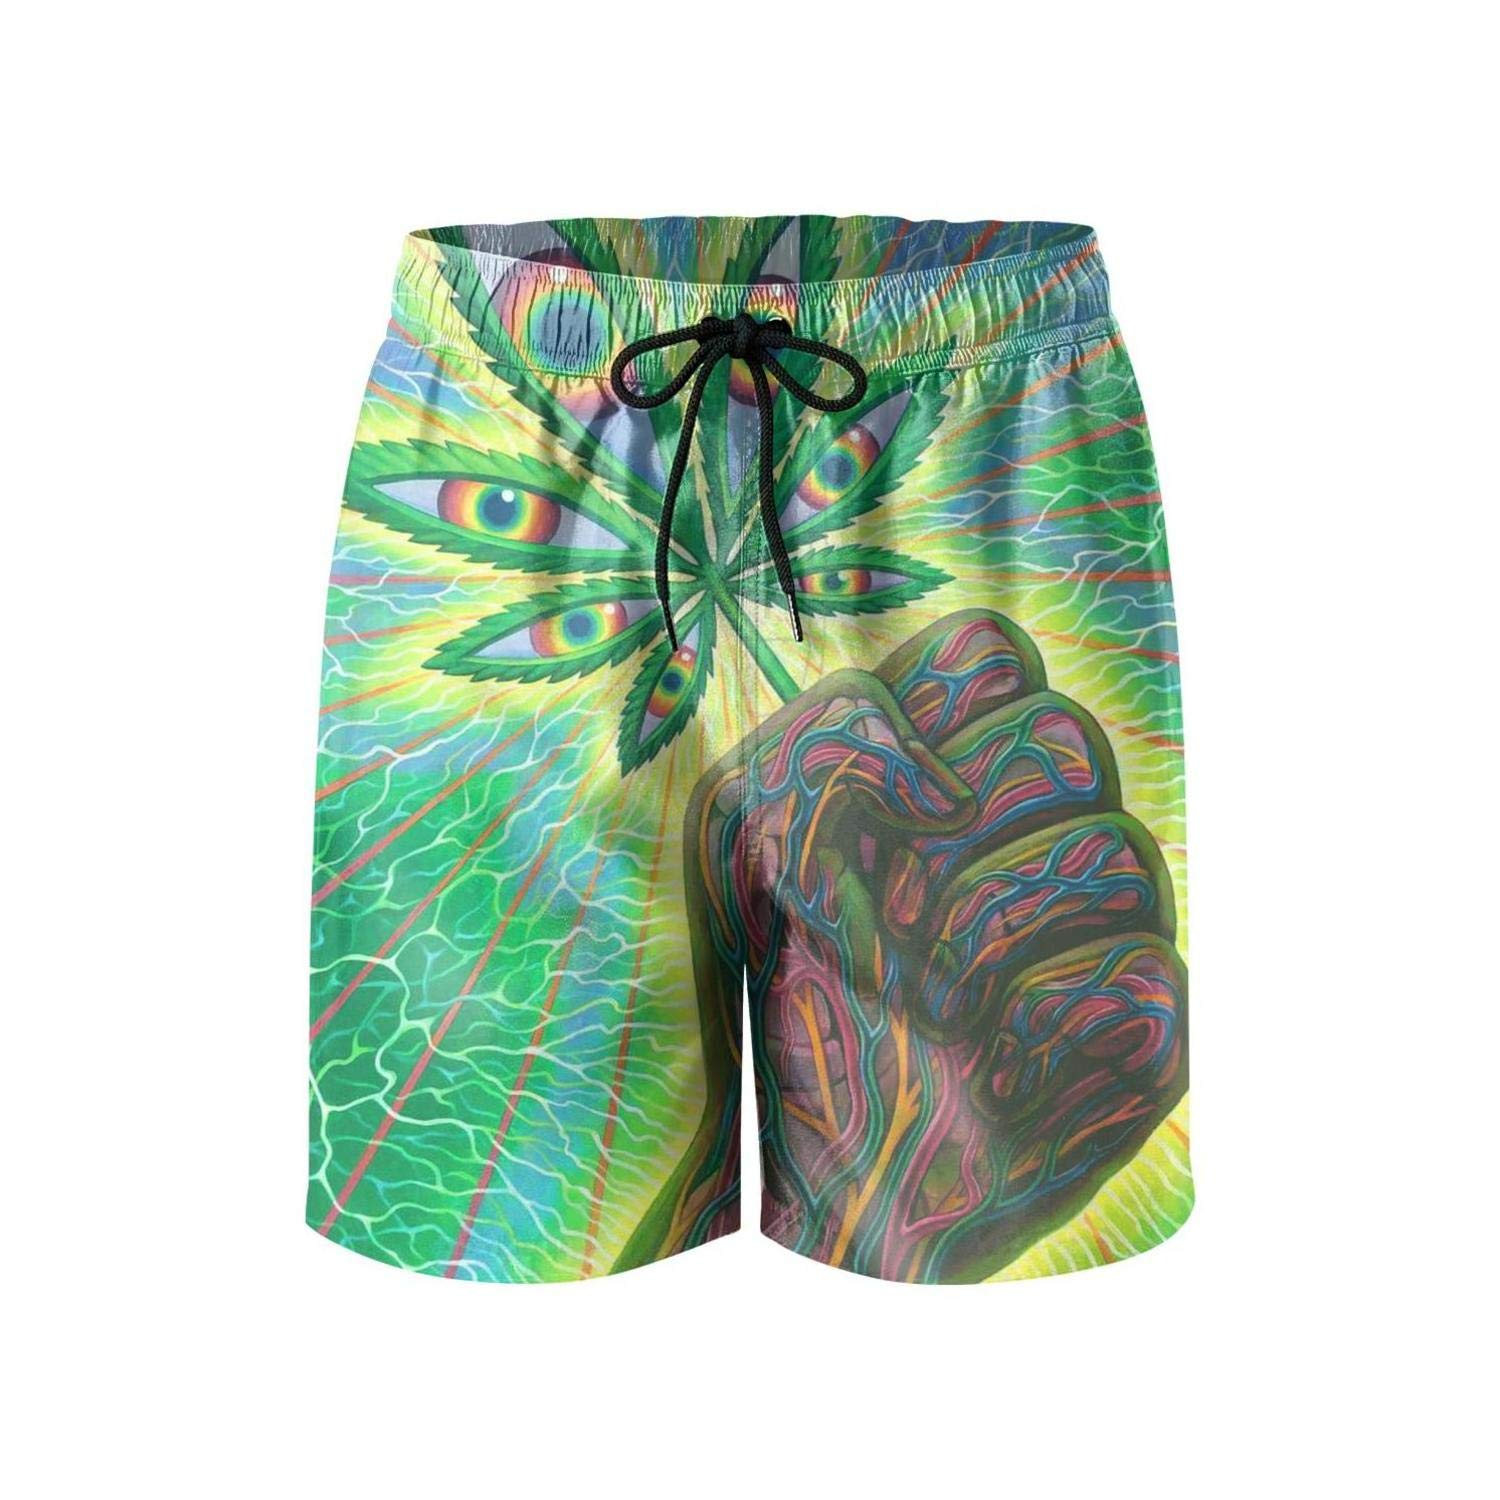 Cannabis Weed Hand Marijuana Beach Swim Mens Shorts Adjustable Microfiber